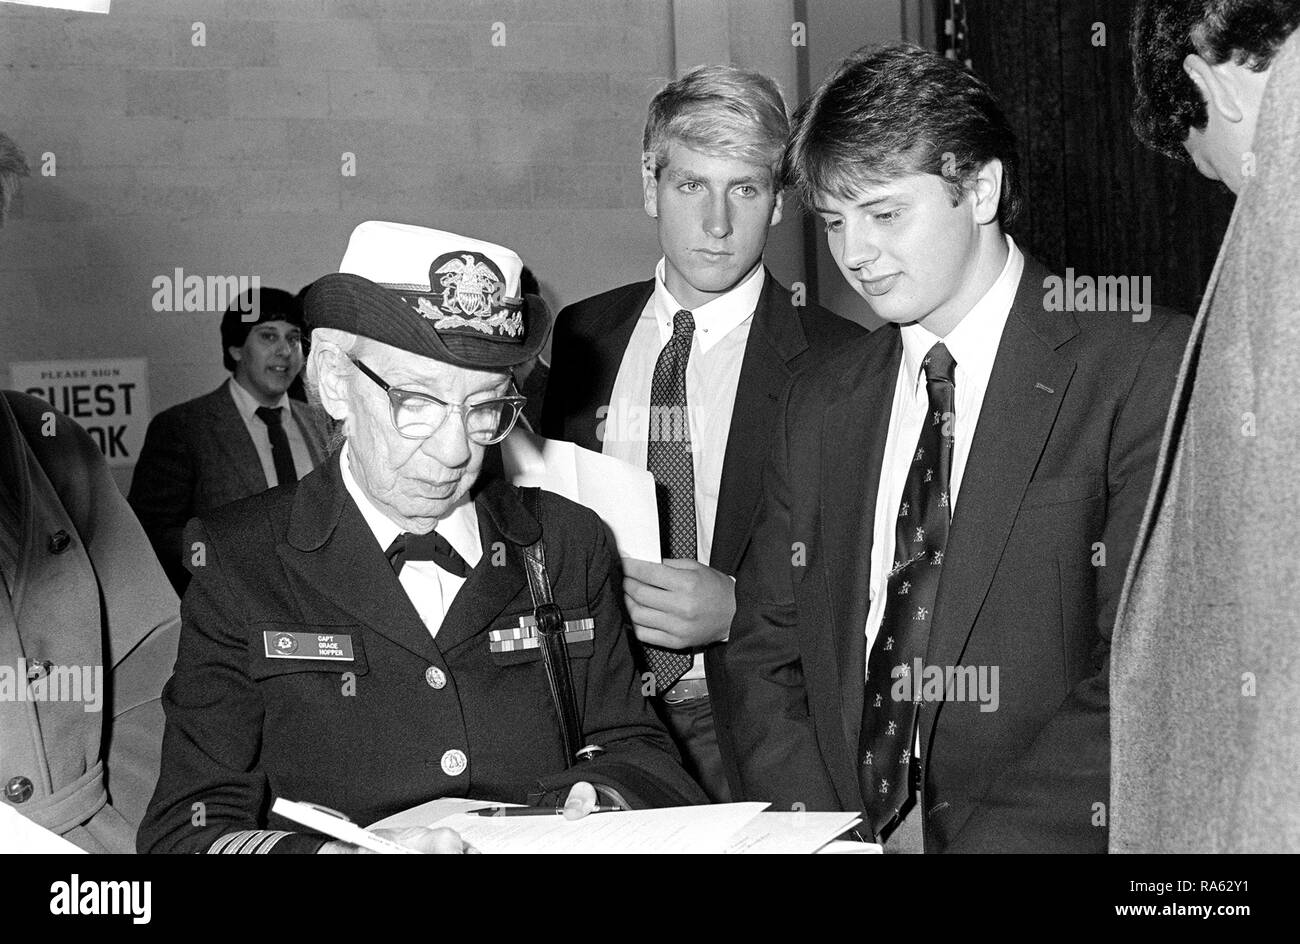 1983 - Captain Grace Murray Hopper signs autographs for students from Brewster Academy at the conclusion of a ceremony to dedicate a computer learning center in her name at the high school. - Stock Image